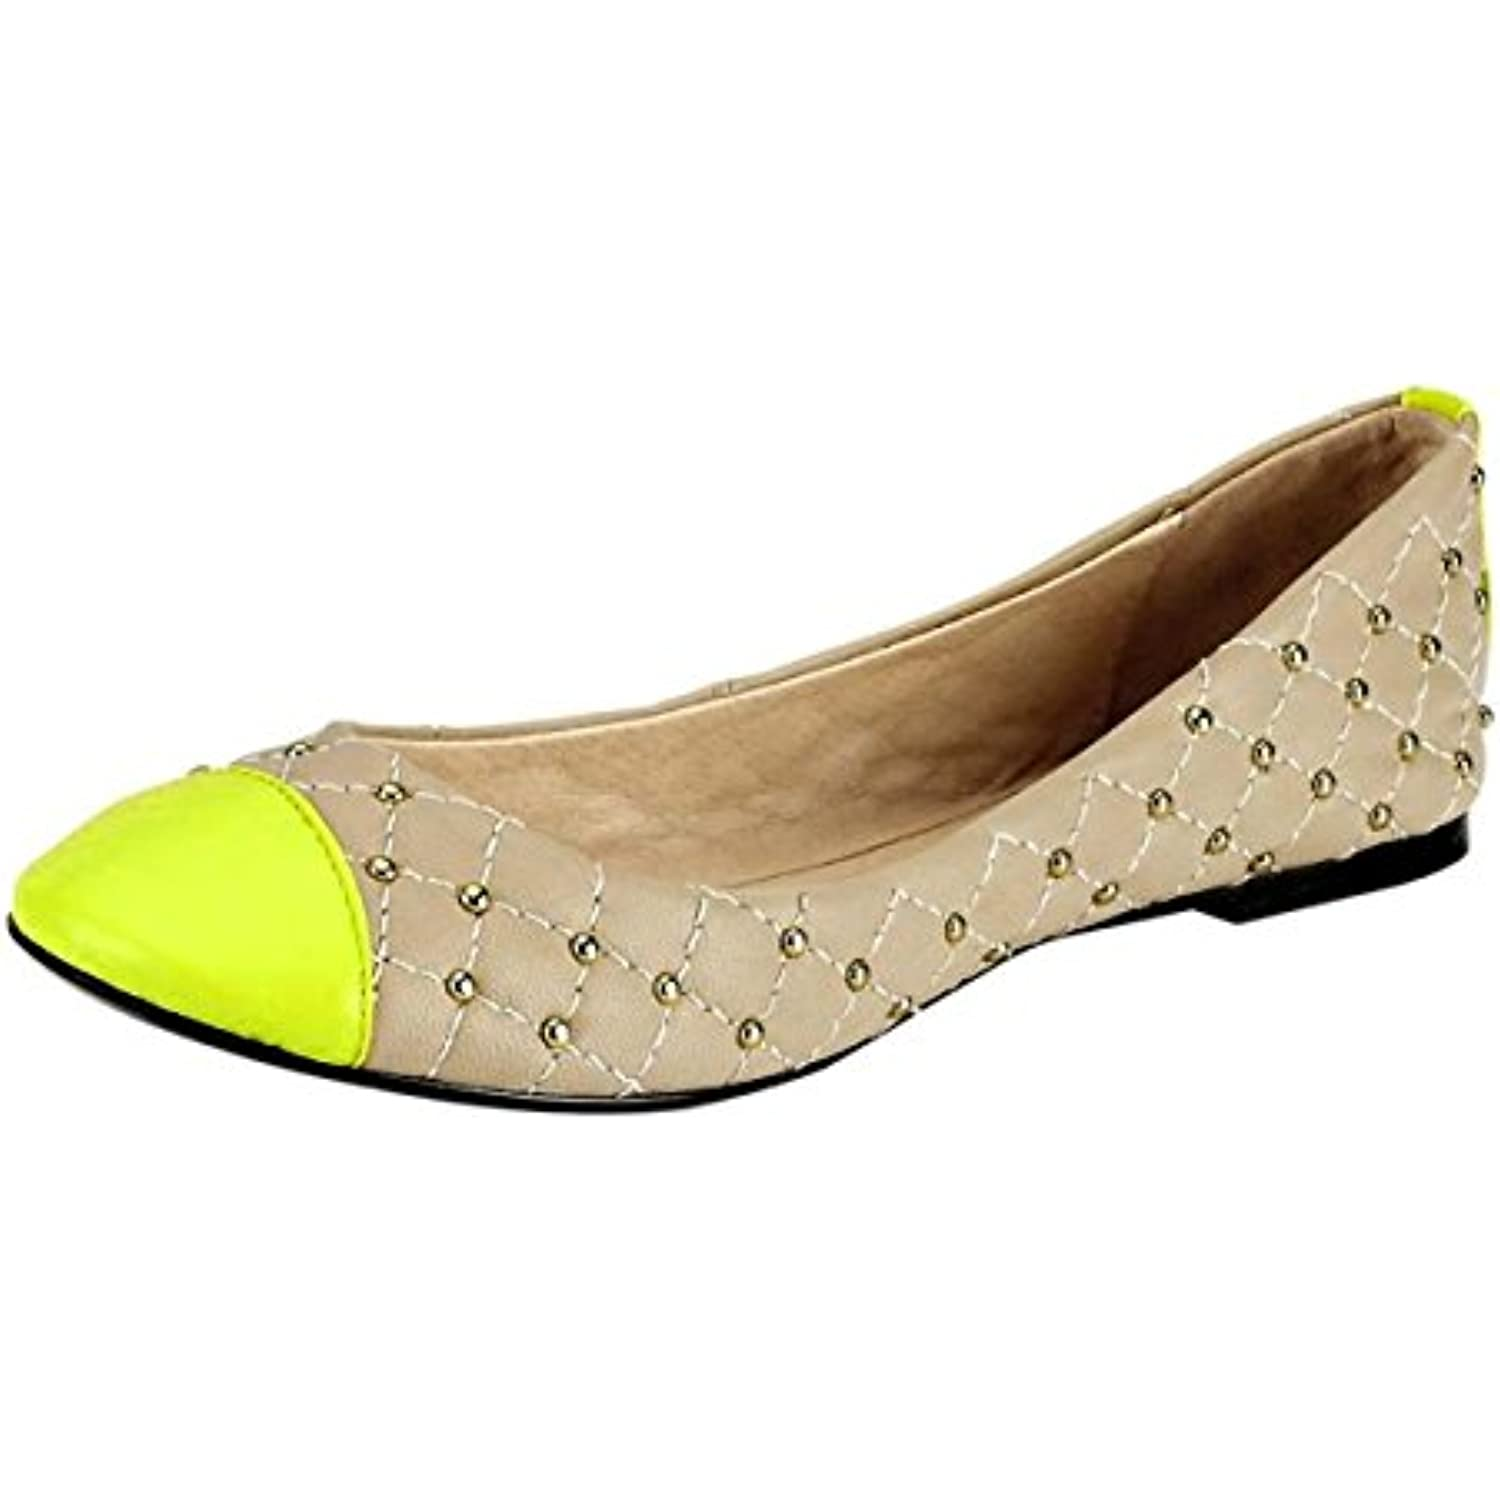 Heine chaussures MulticoloreB0176h8ha4 Femme Ballerines Connections Pour nXOPwk0N8Z